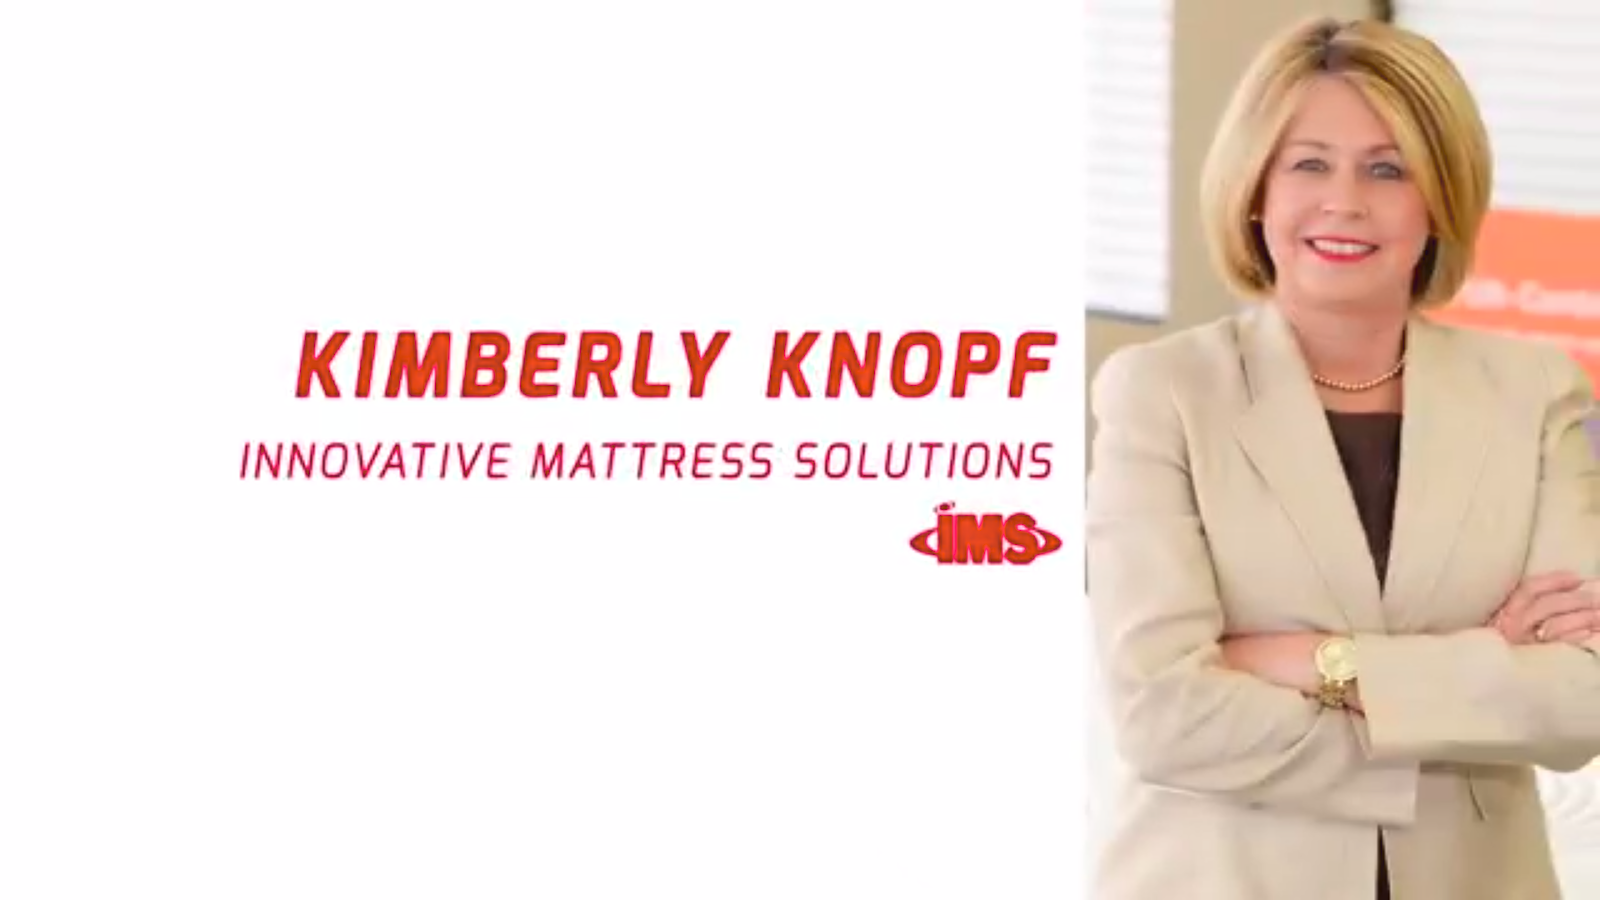 Kimberly Knopf Profile Video